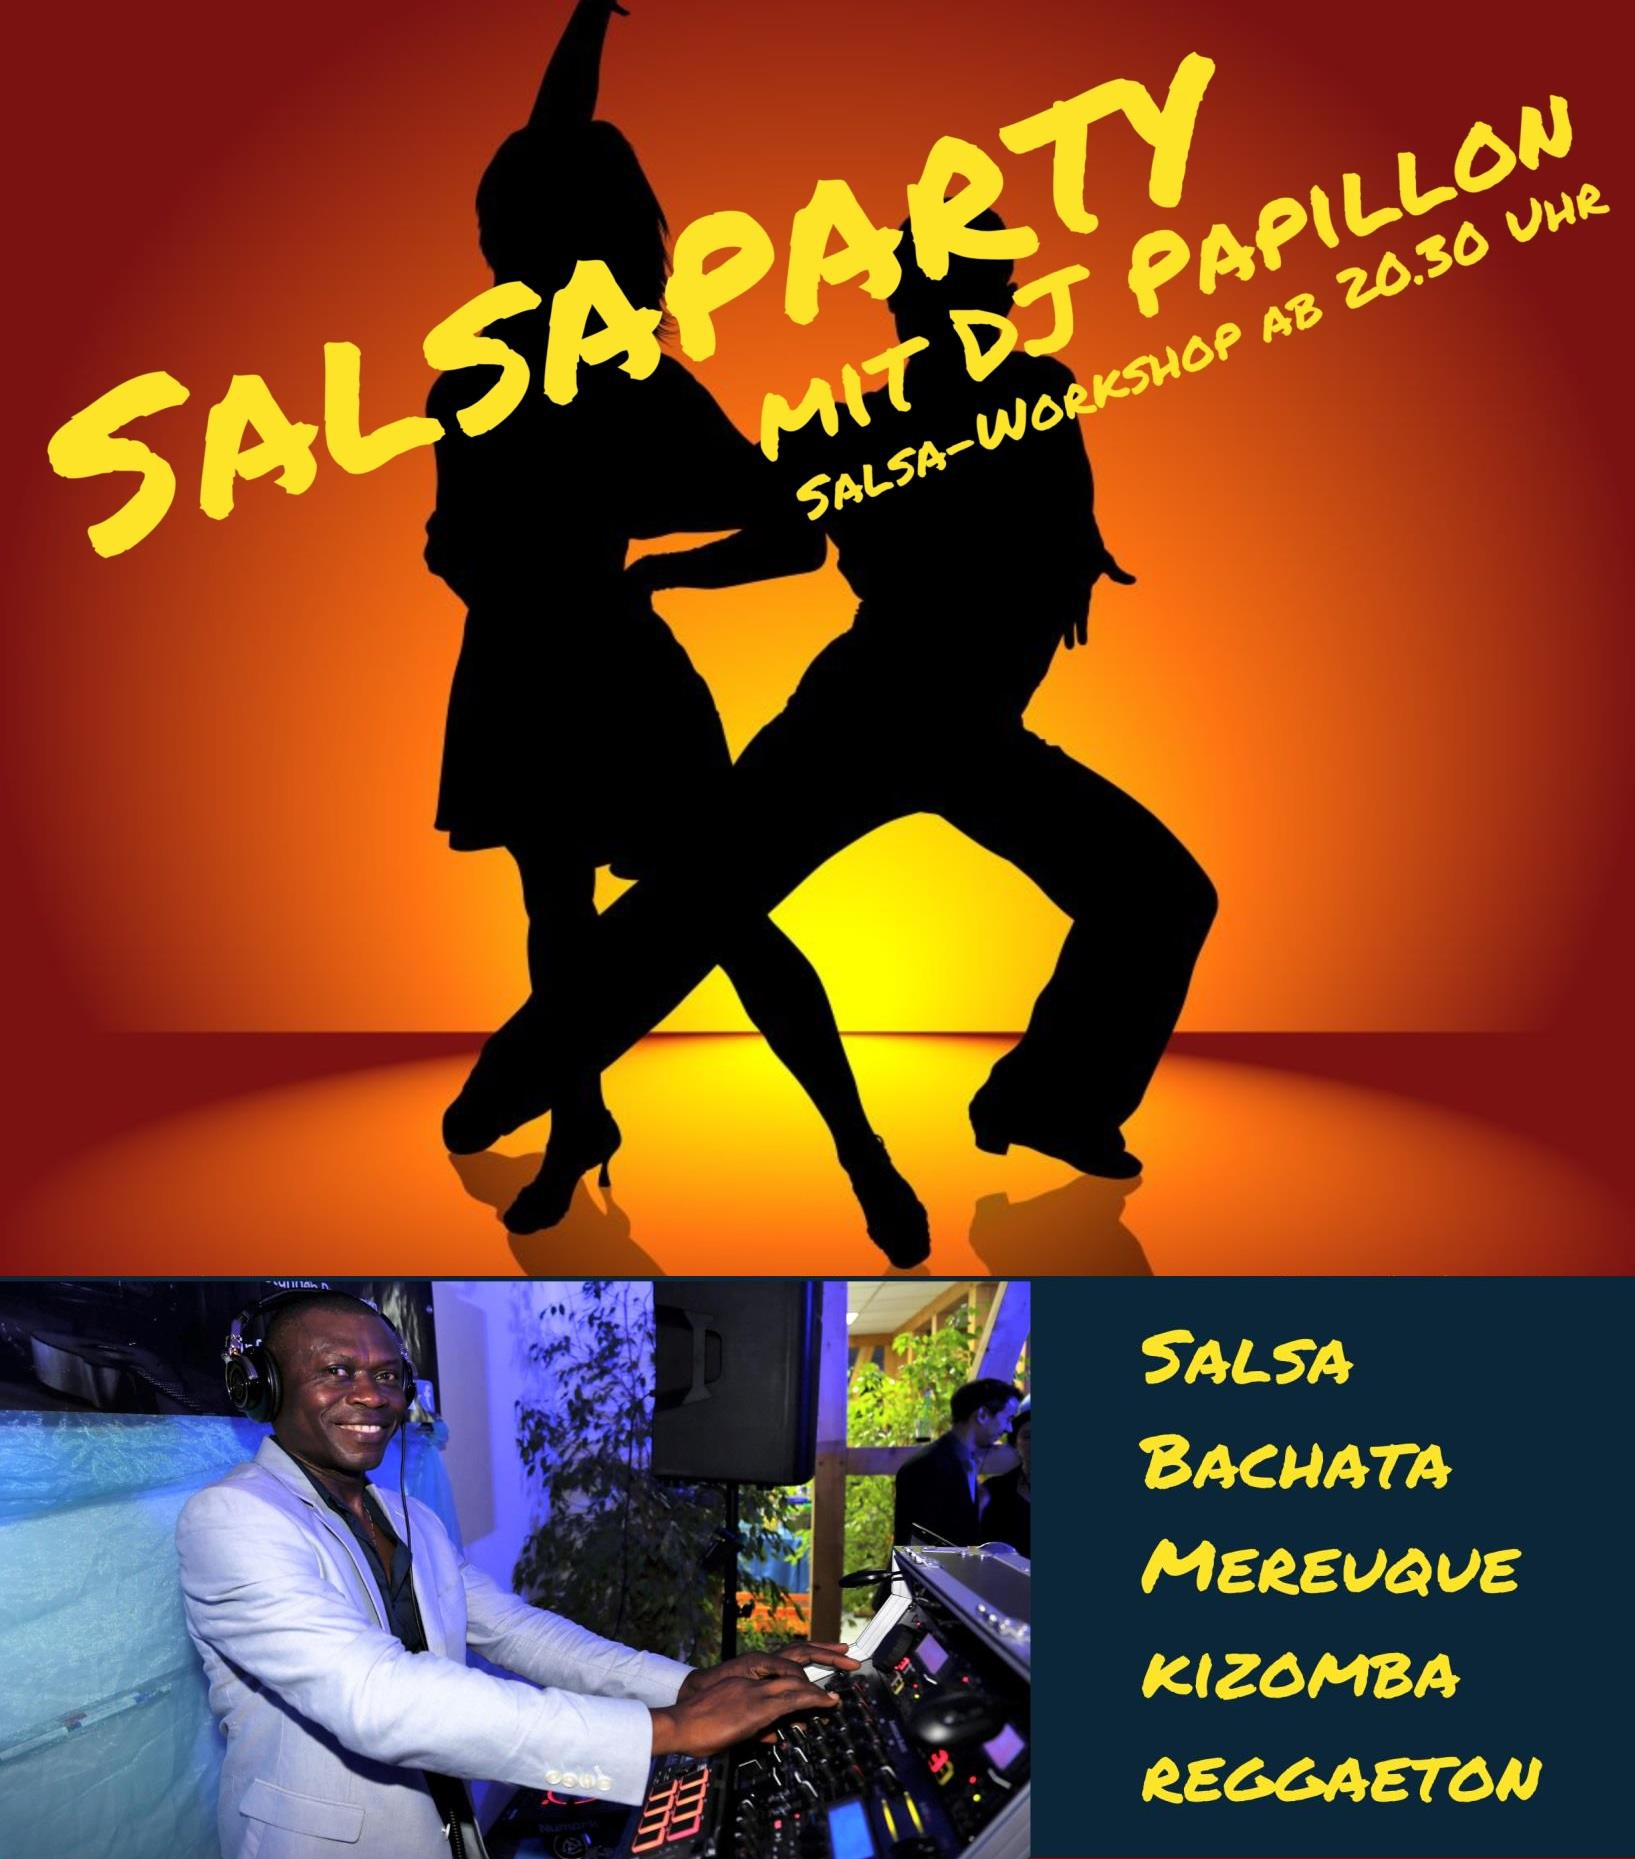 Salsa-Party mit DJ Papillon